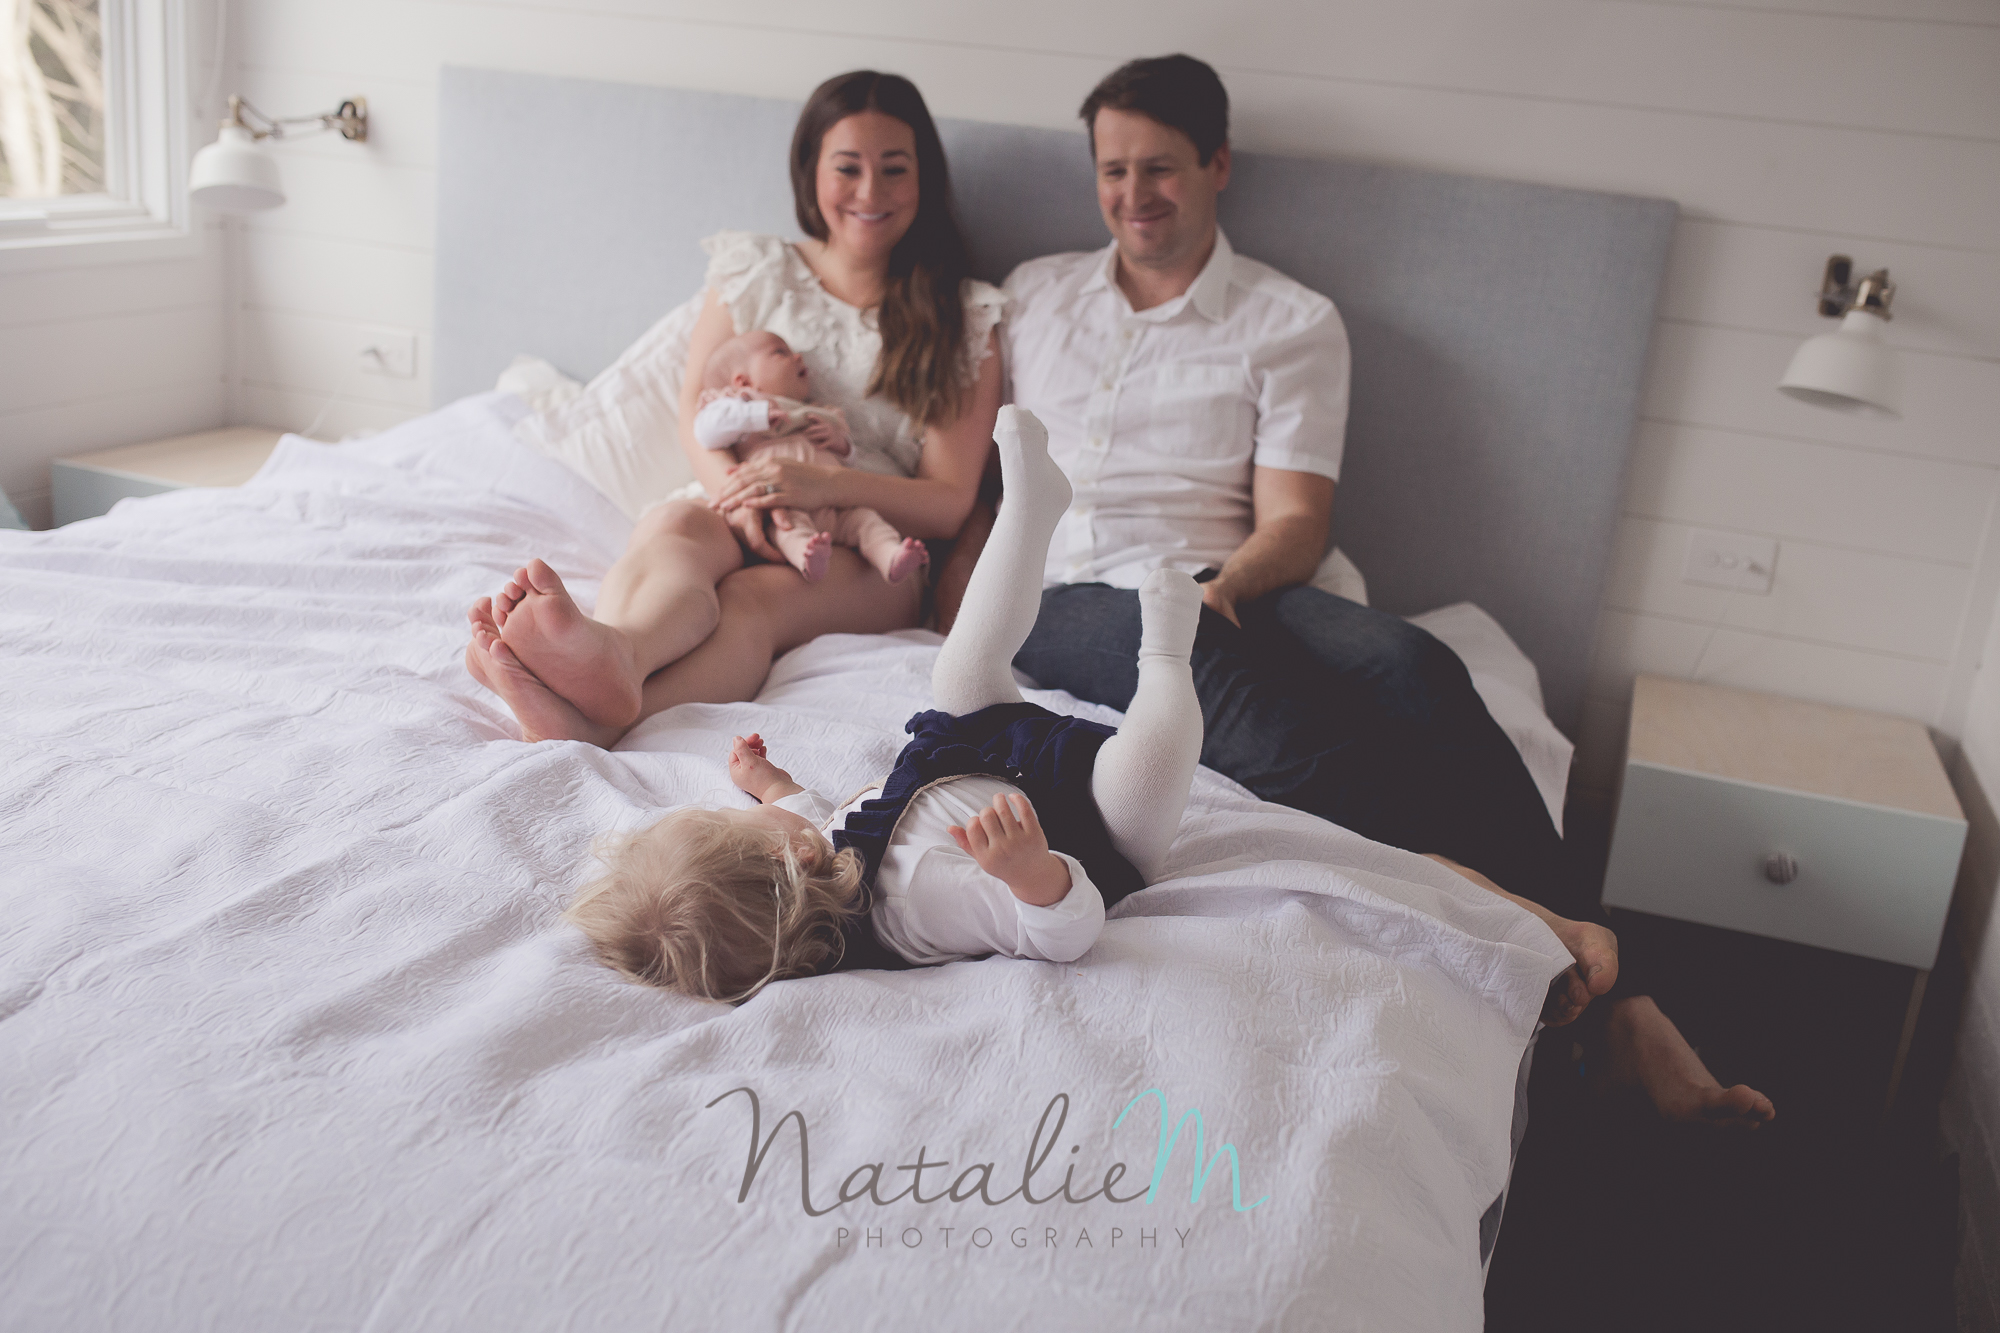 At Home Lifestyle Newborn - $850 - Includes up to two hours in your home taking relaxed, informal, unposed images of your family and newborn.All 40 edited images as high resolution download.$50 towards prints or album - Choose your own size.